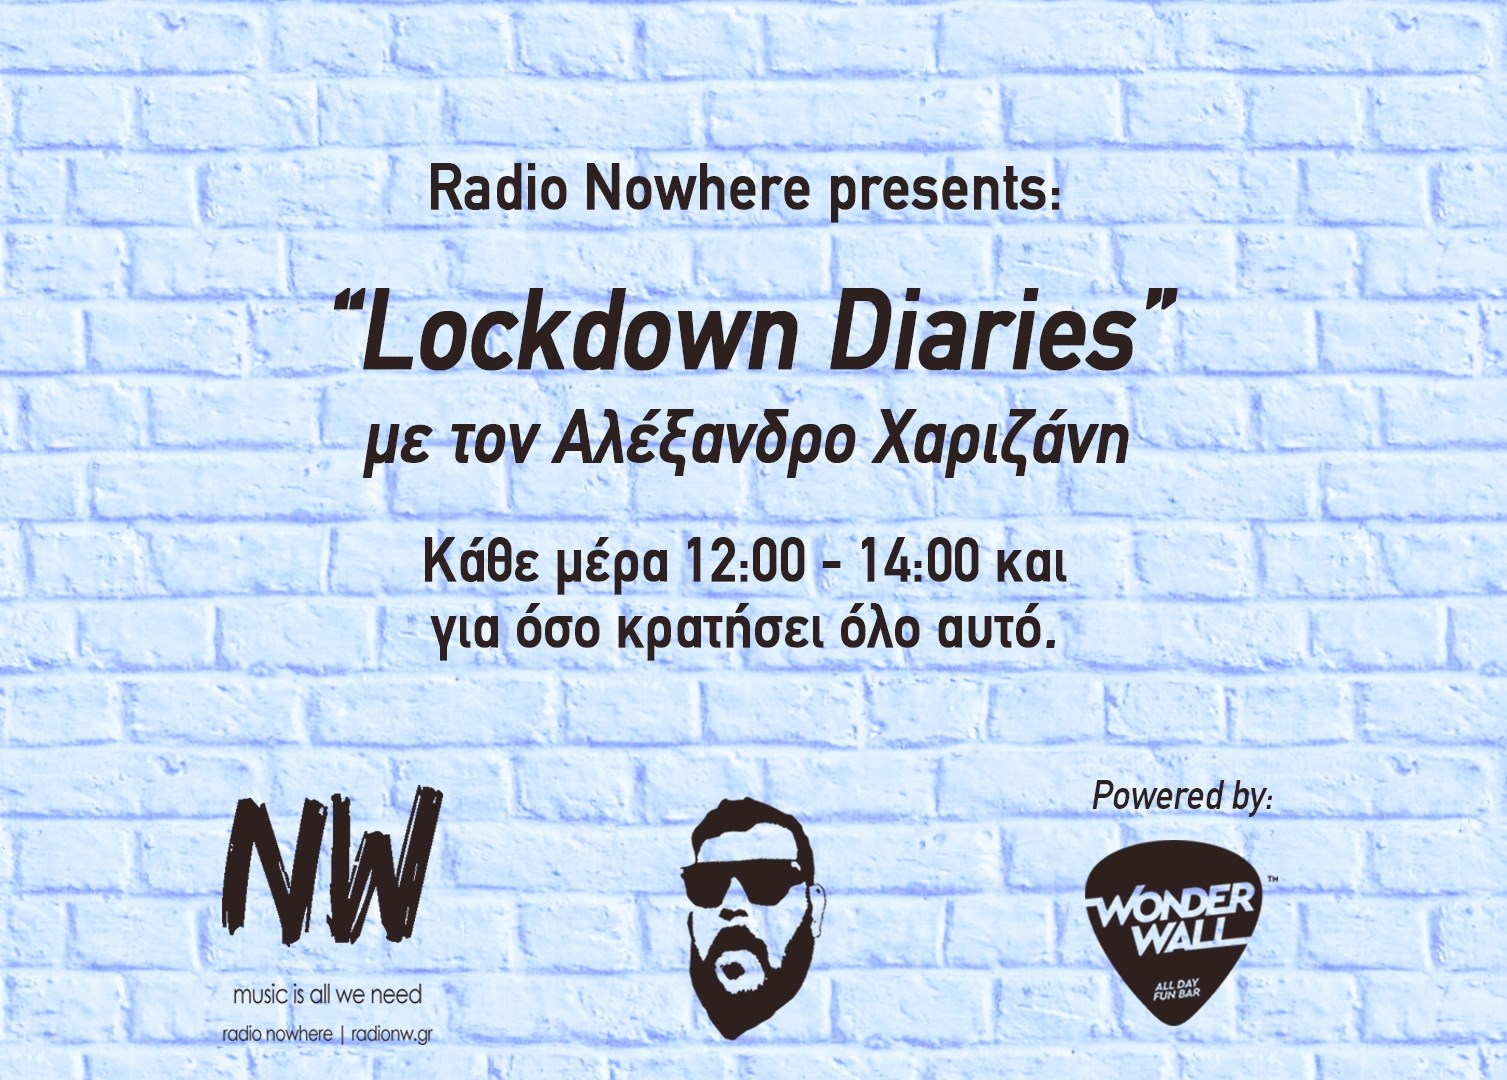 Lockdown Diaries Radio Nowhere